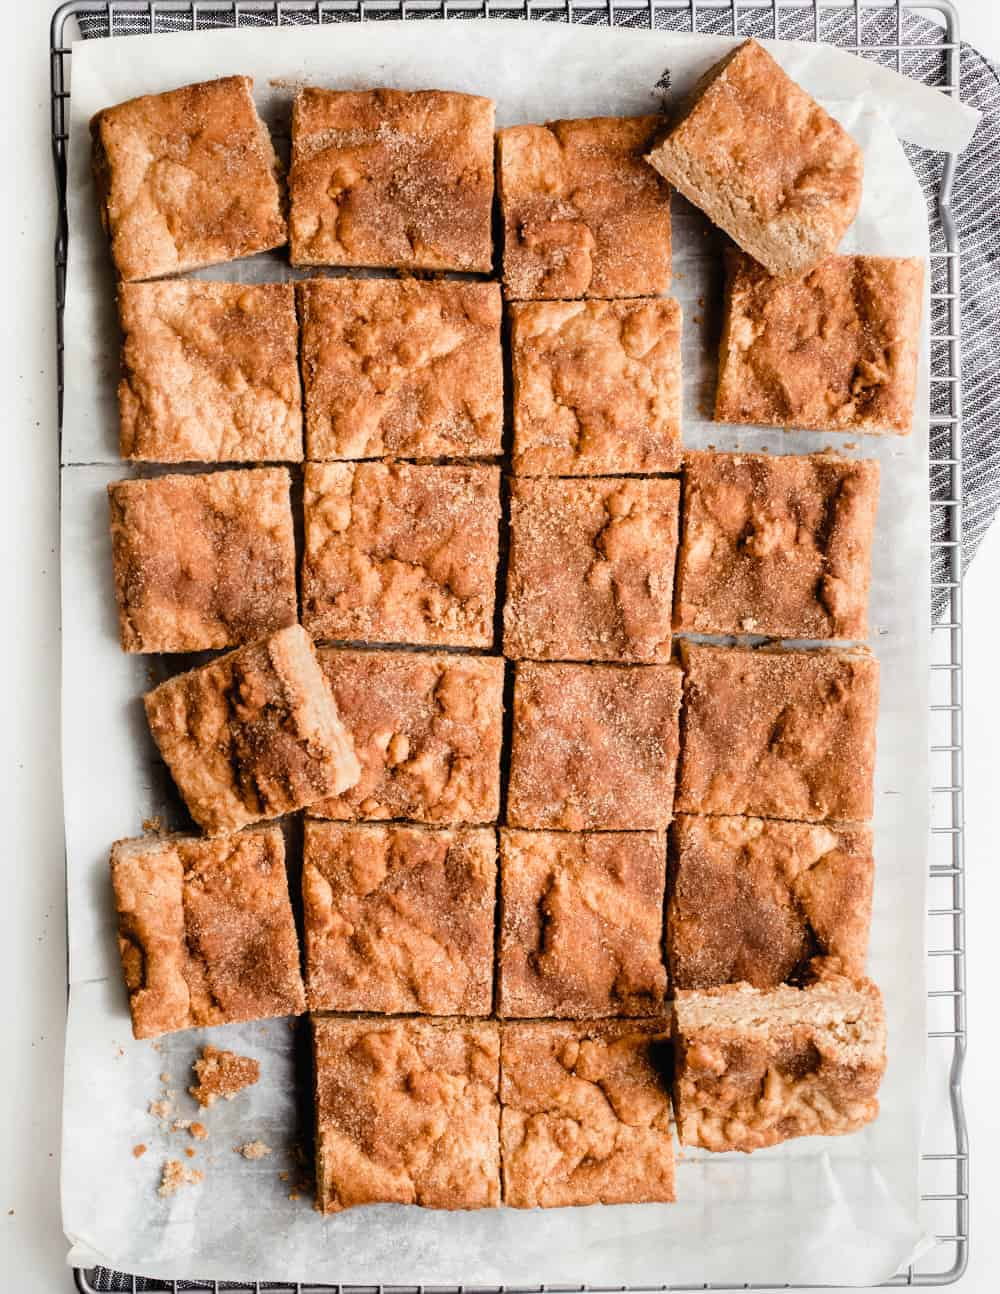 Snickerdoodle blondies scattered on a cooling rack